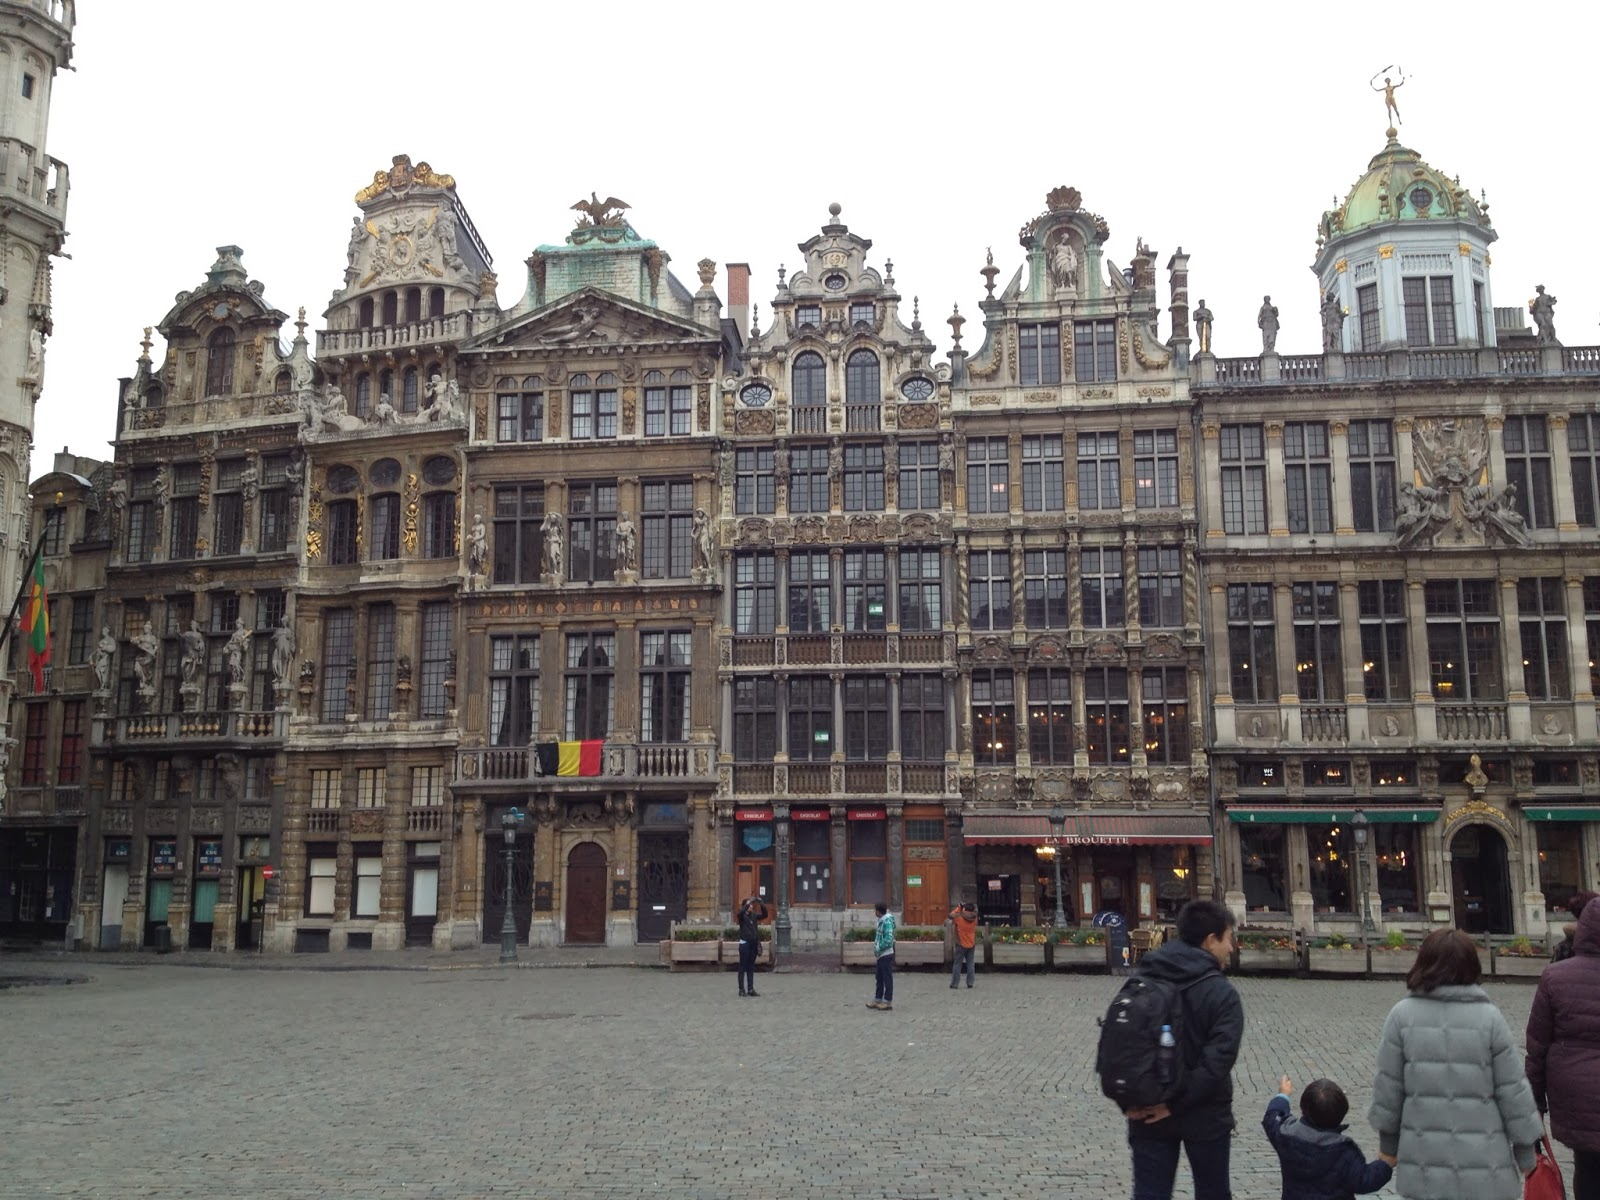 Brussels - Grand Place looks so different during the day